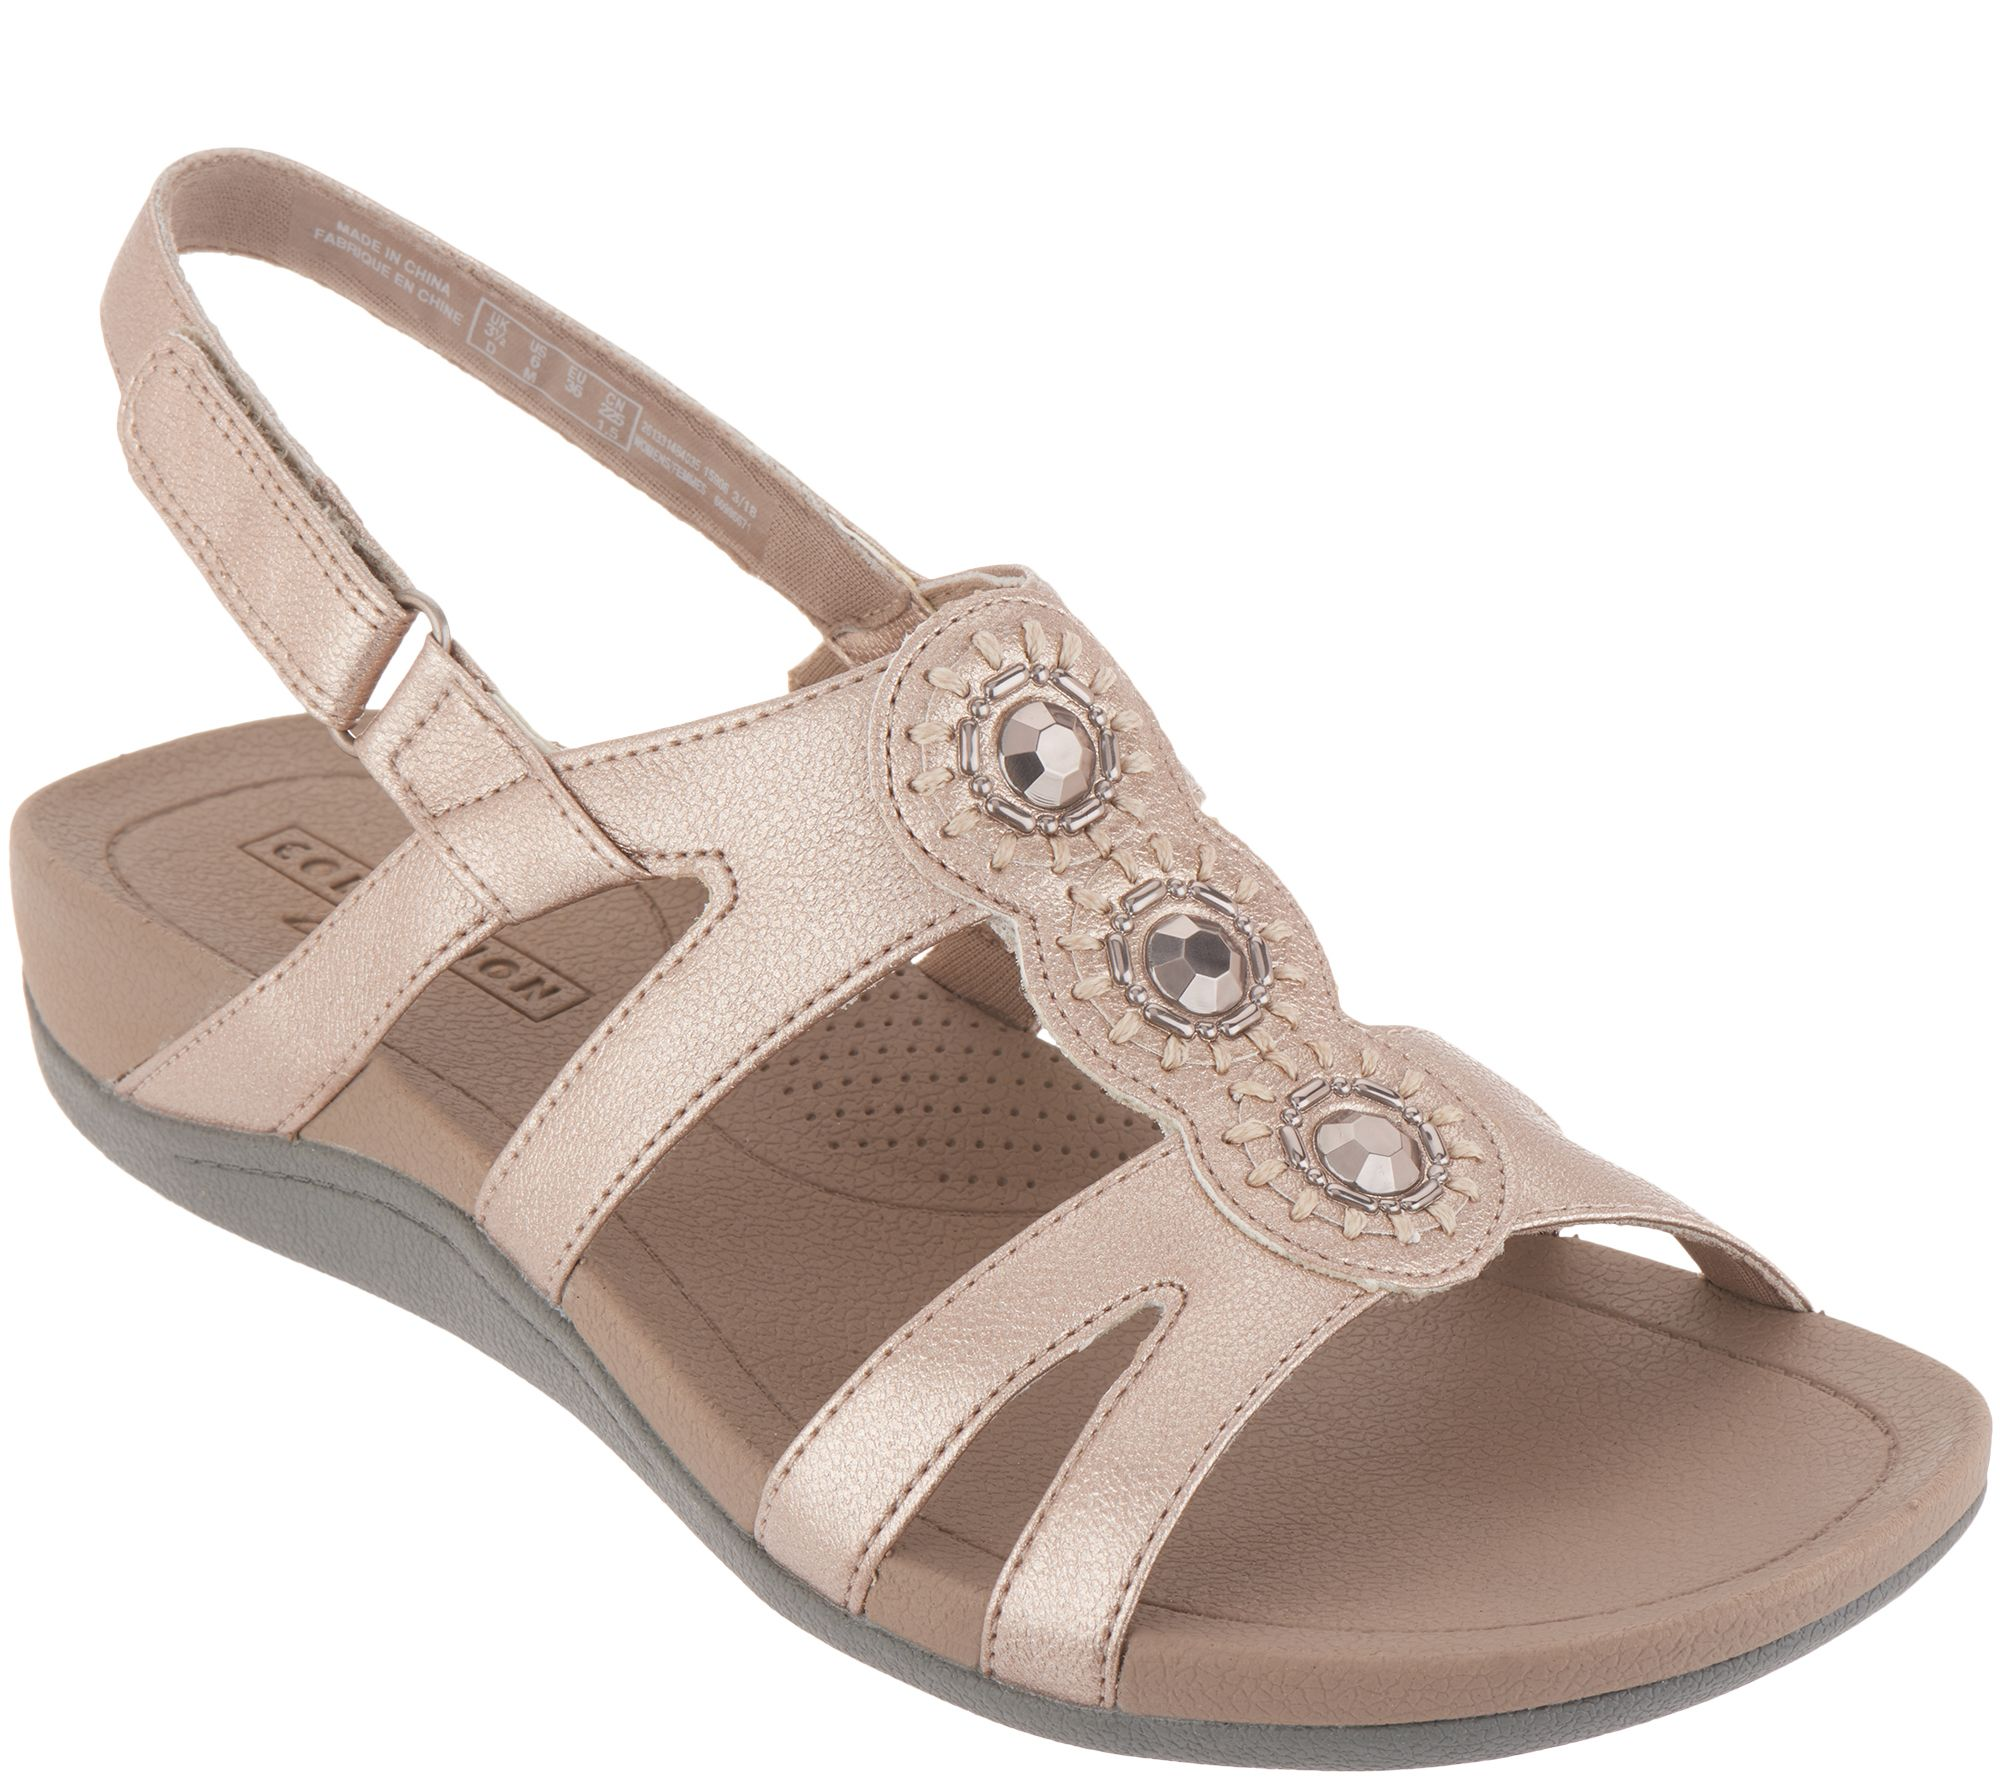 a1d06ab6d73 Clarks Embellished Adjustable Sandals - Pical Serino - Page 1 — QVC.com